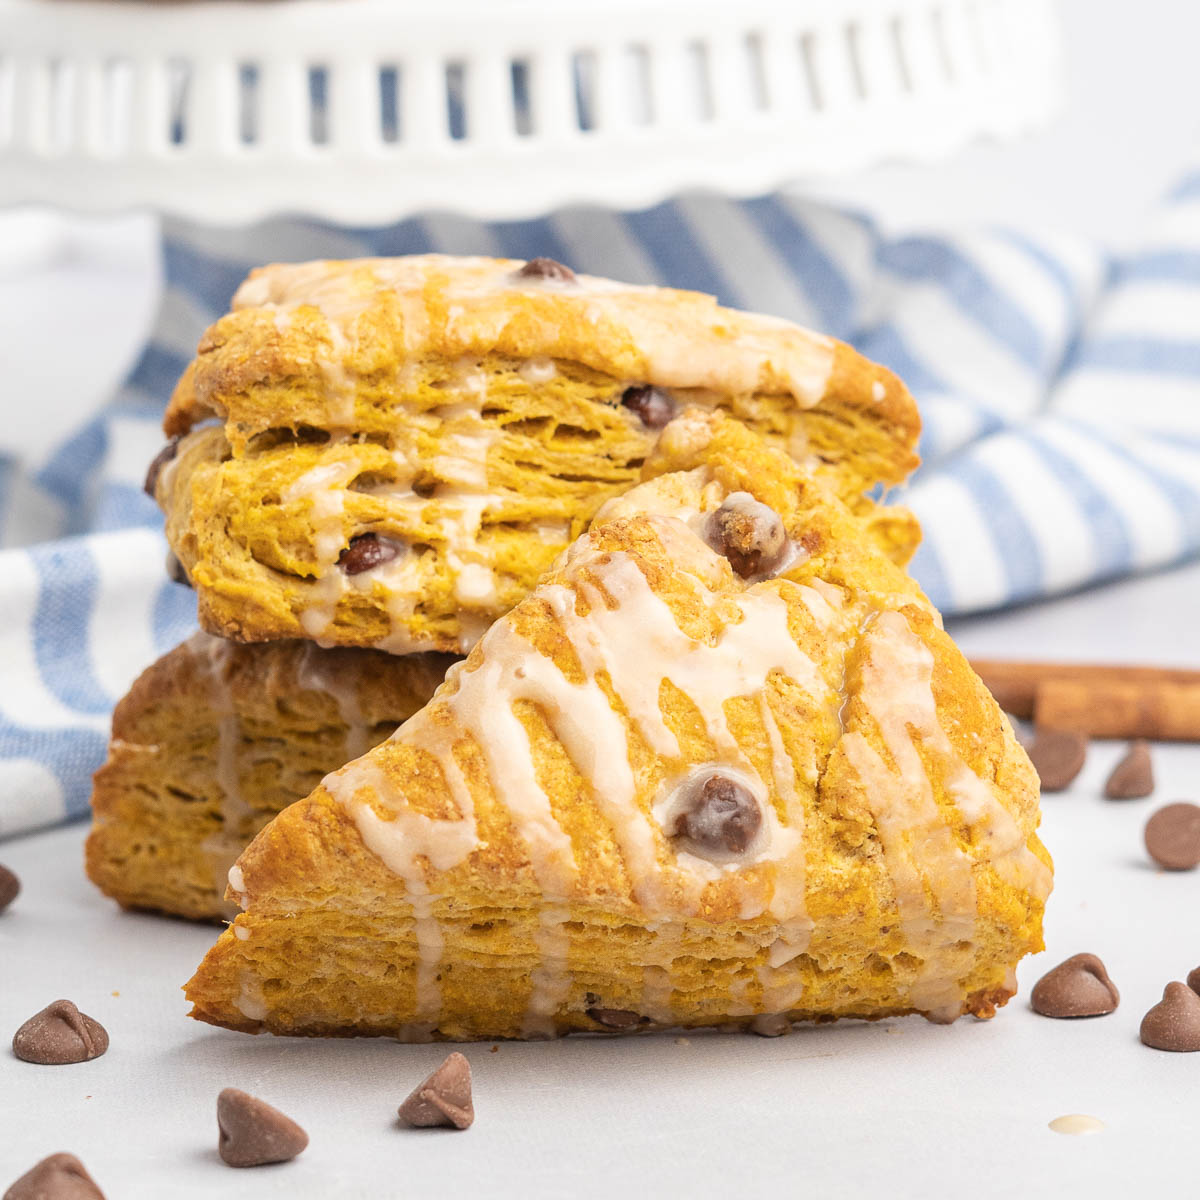 Three pumpkin scones with icing drizzle and chocolate chips.